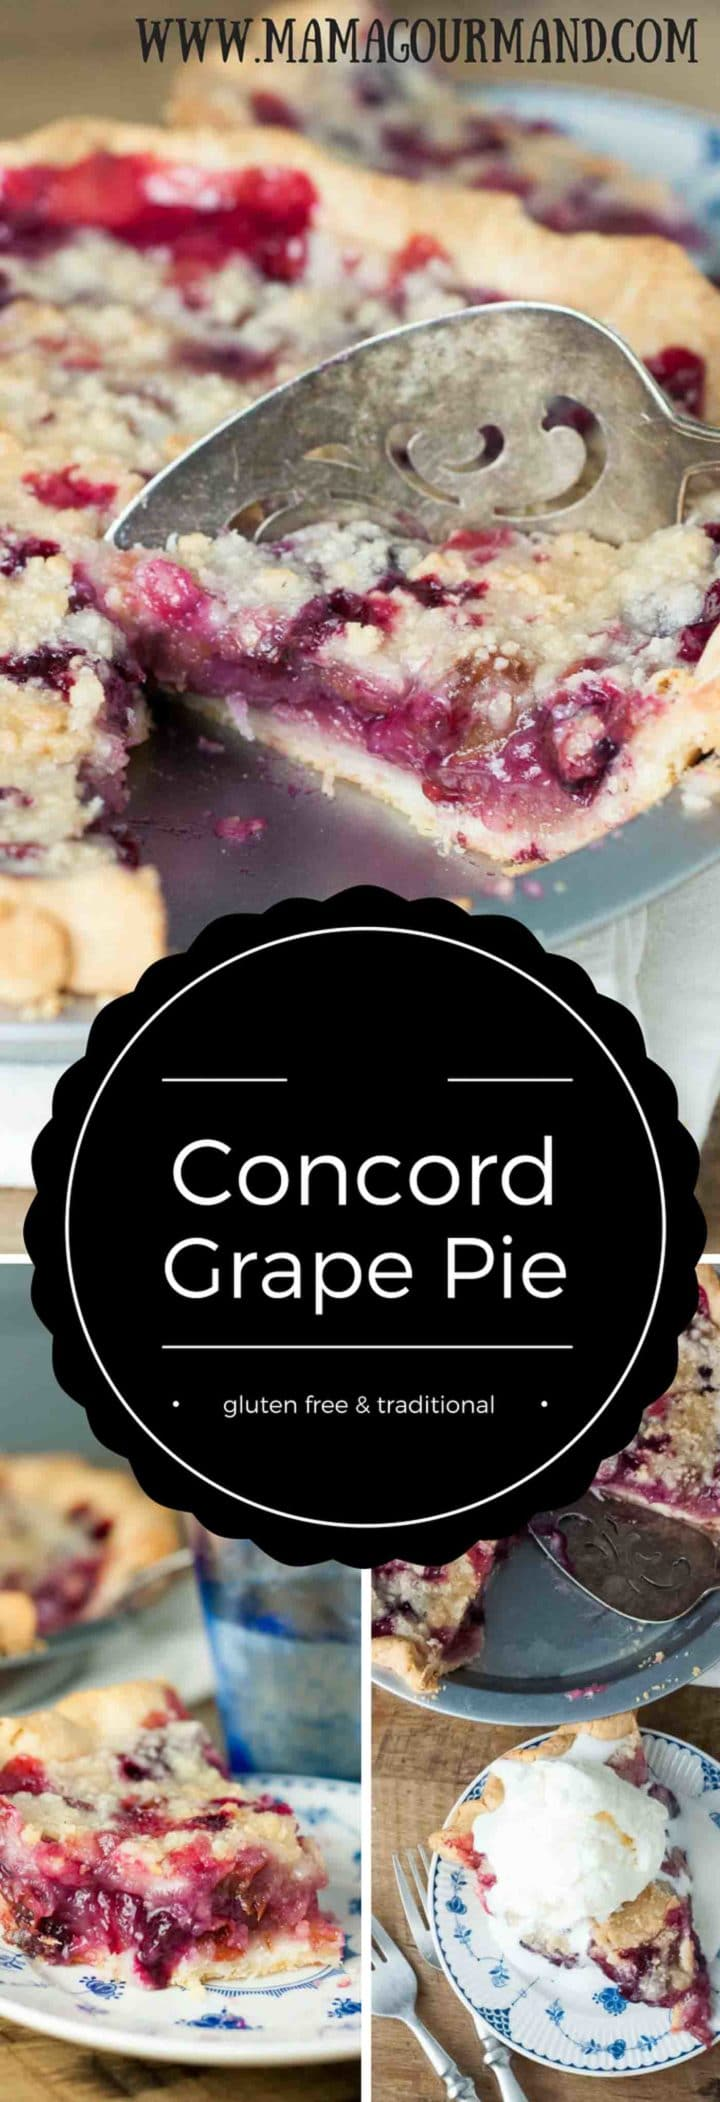 An easy to follow, family recipe for Concord Grape Pie. This Concord Grape Pie is so amazing, I guarantee you have never had anything quite like it before! https://www.mamagourmand.com